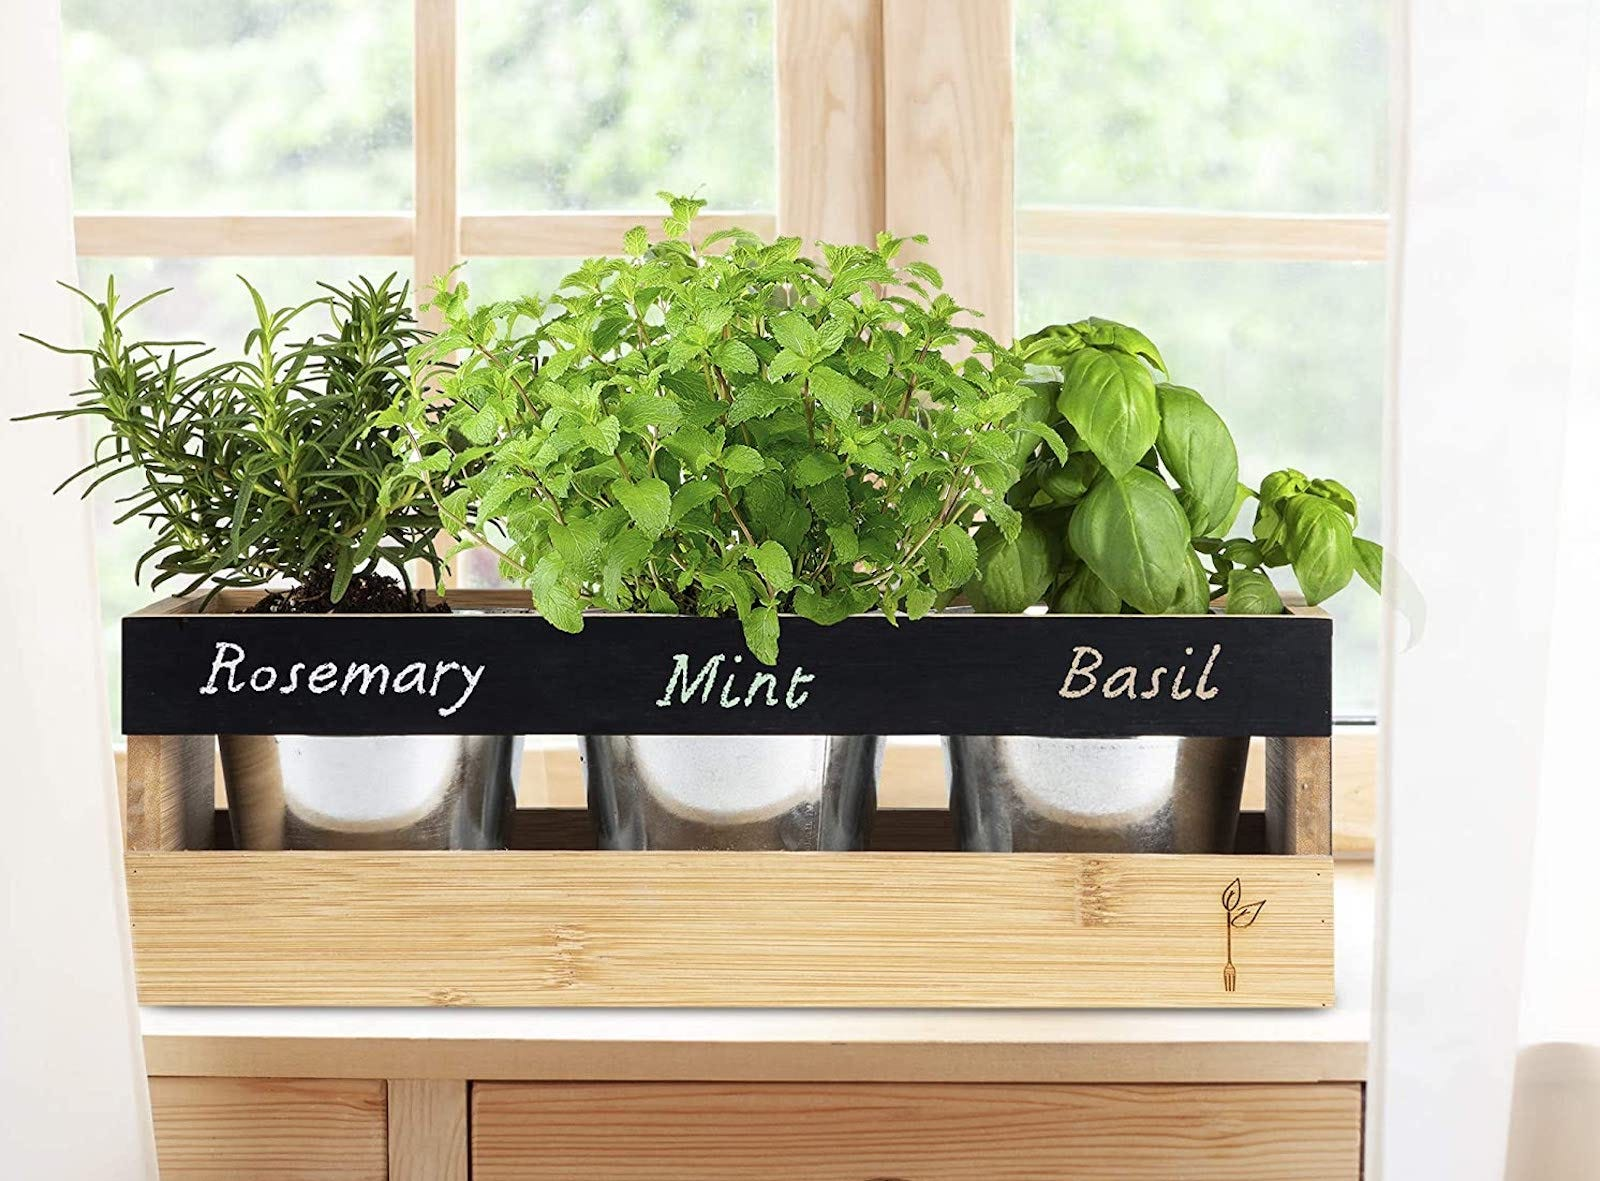 A wood planter with three labeled pots of herbs sitting in a window